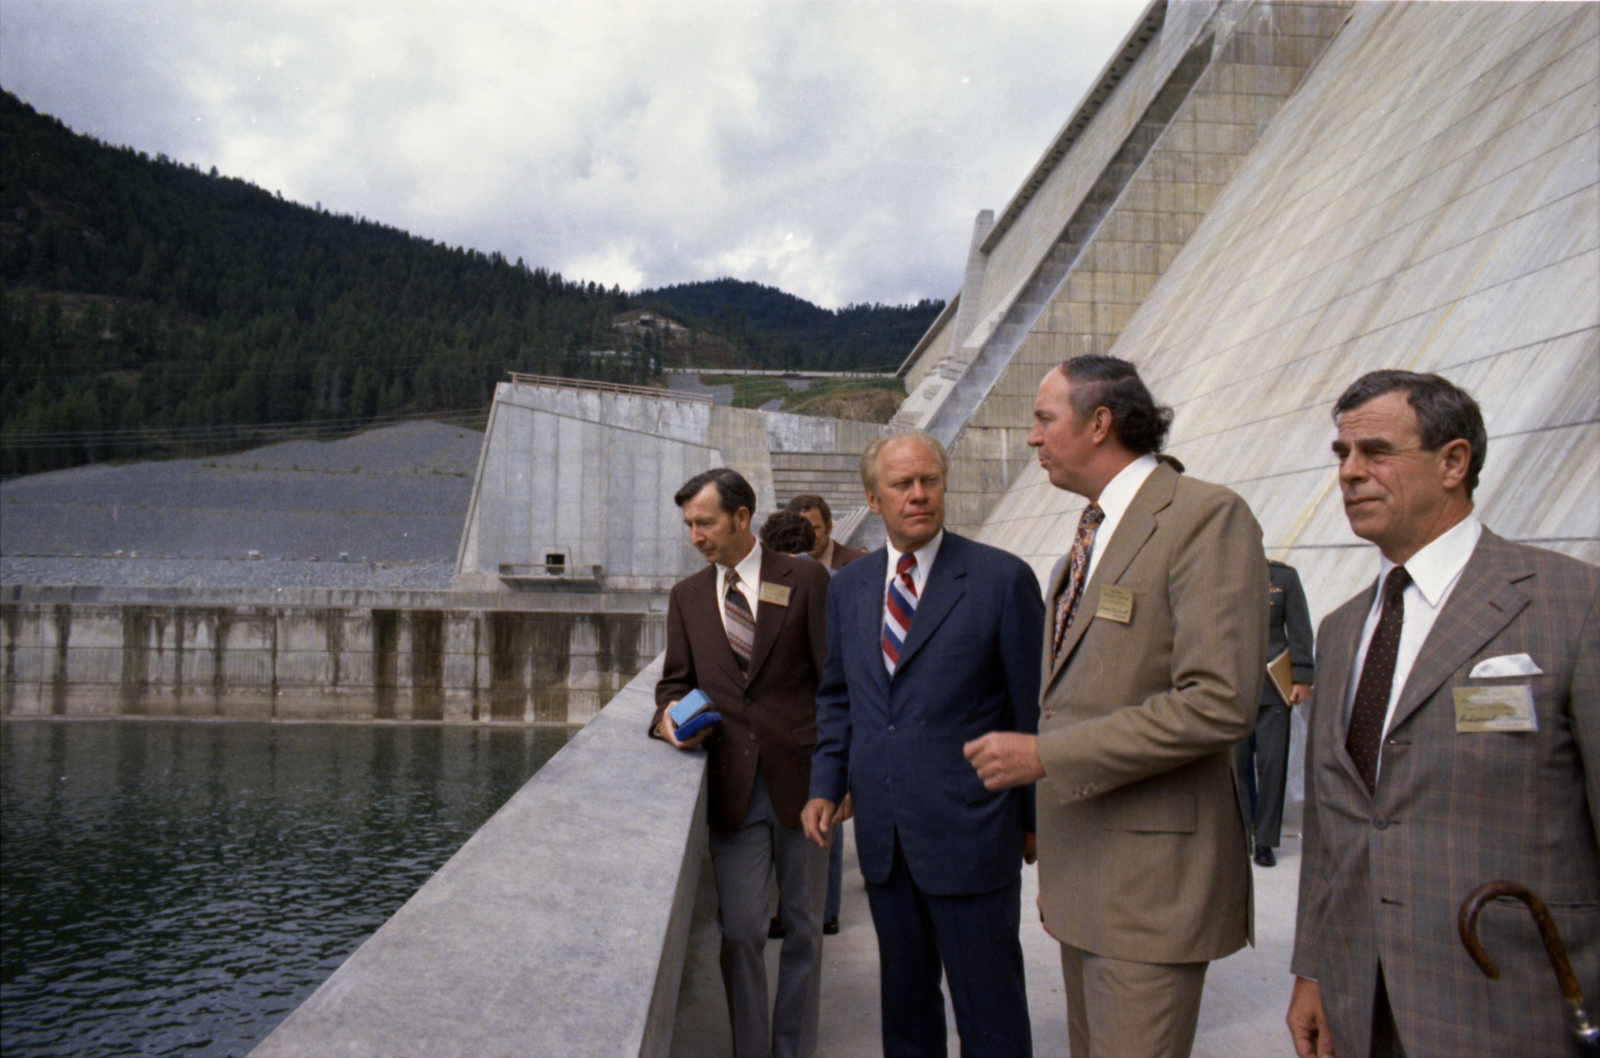 President Gerald R. Ford and Canadian Minister of Energy, Mines, and Resources Donald S. Macdonald With Others on the Observation Deck at Libby Dam in Libby, Montana